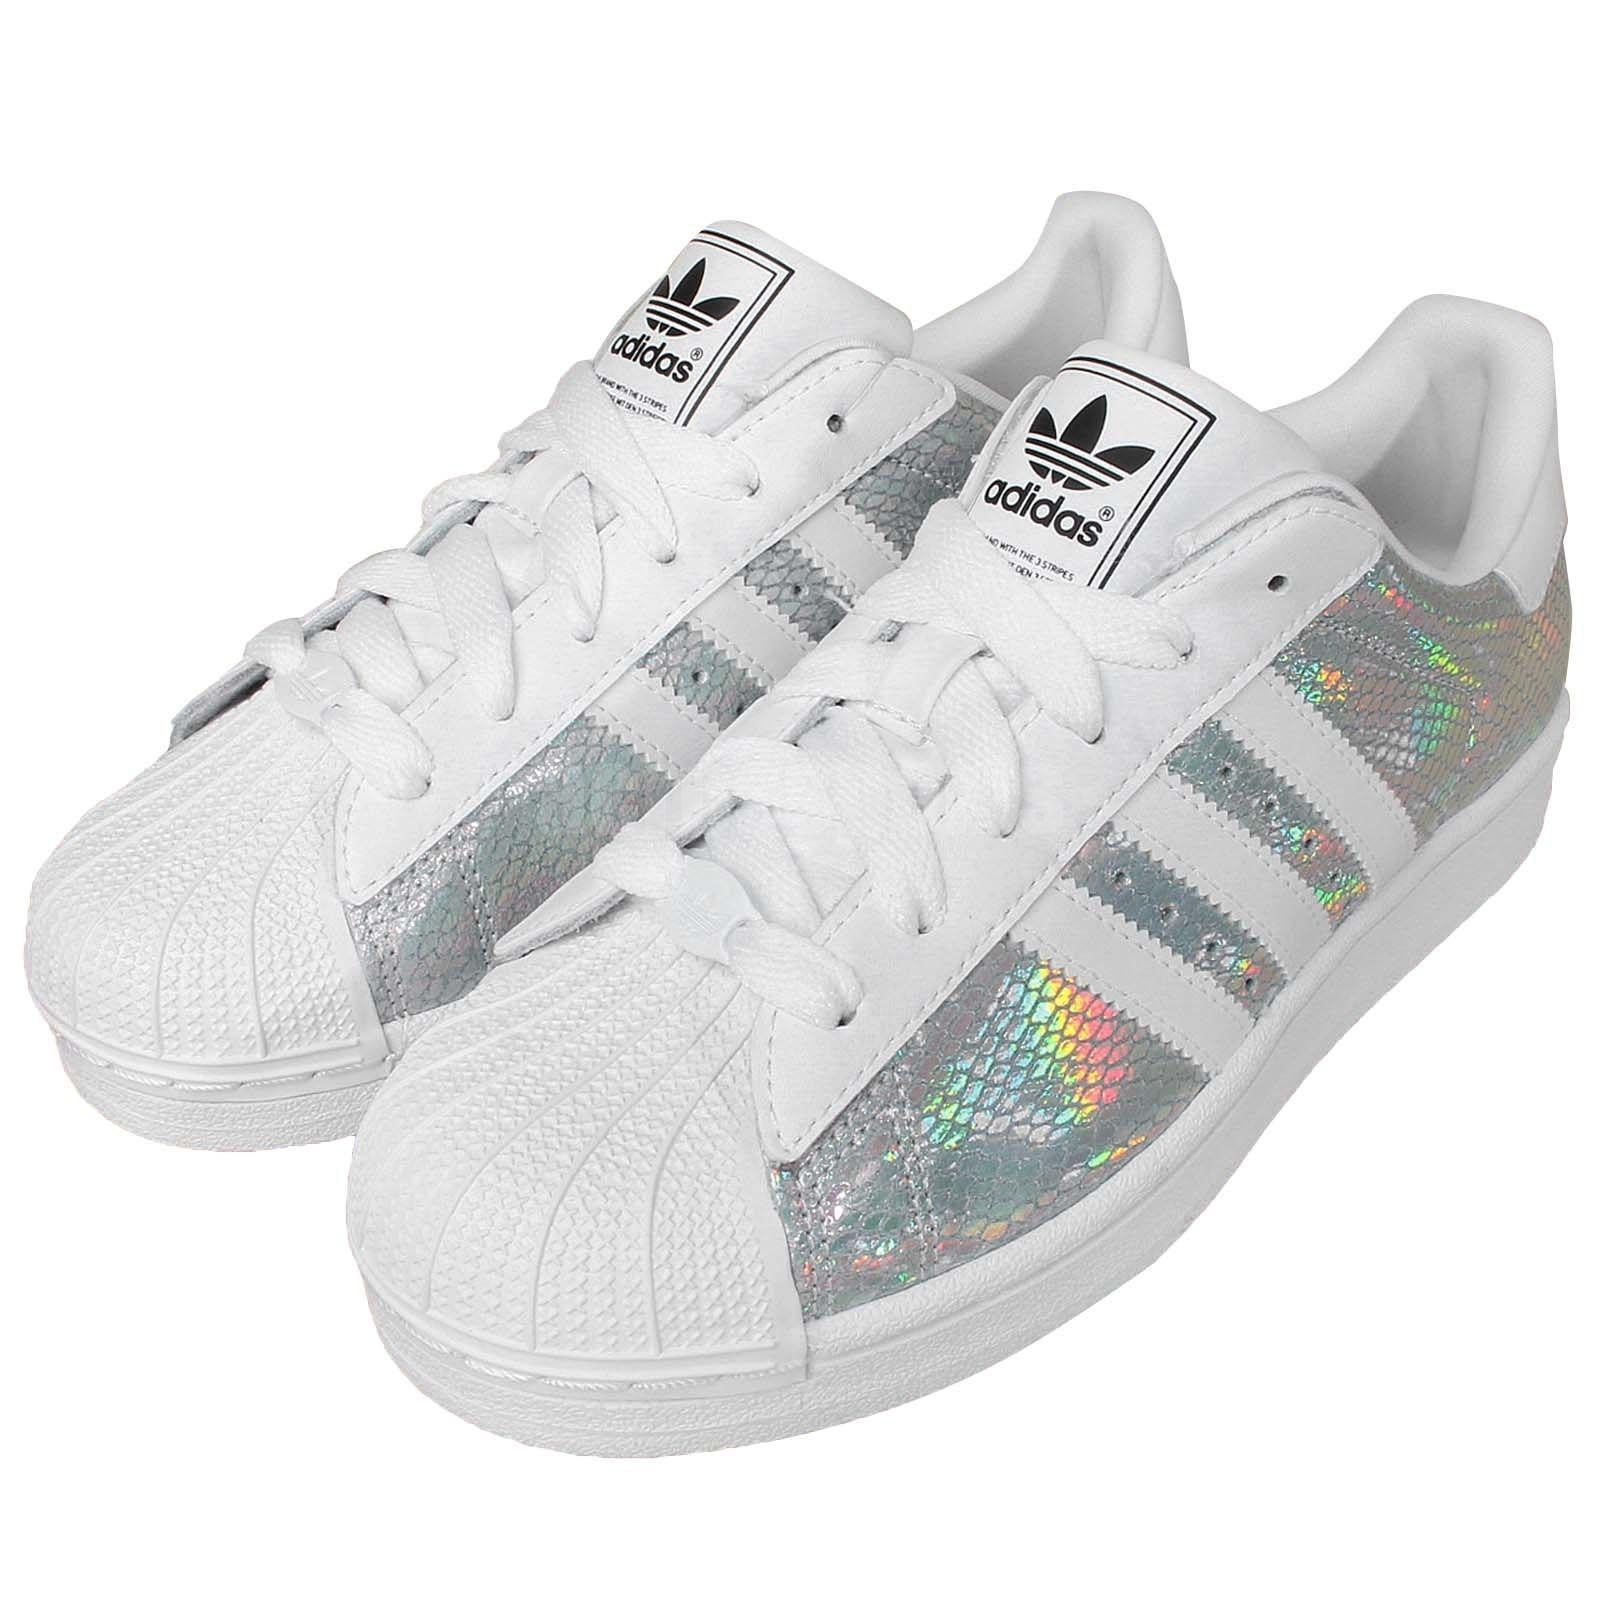 ADIDAS ORIGINALS SUPERSTAR 2 W SILVER WHITE M20904 $169